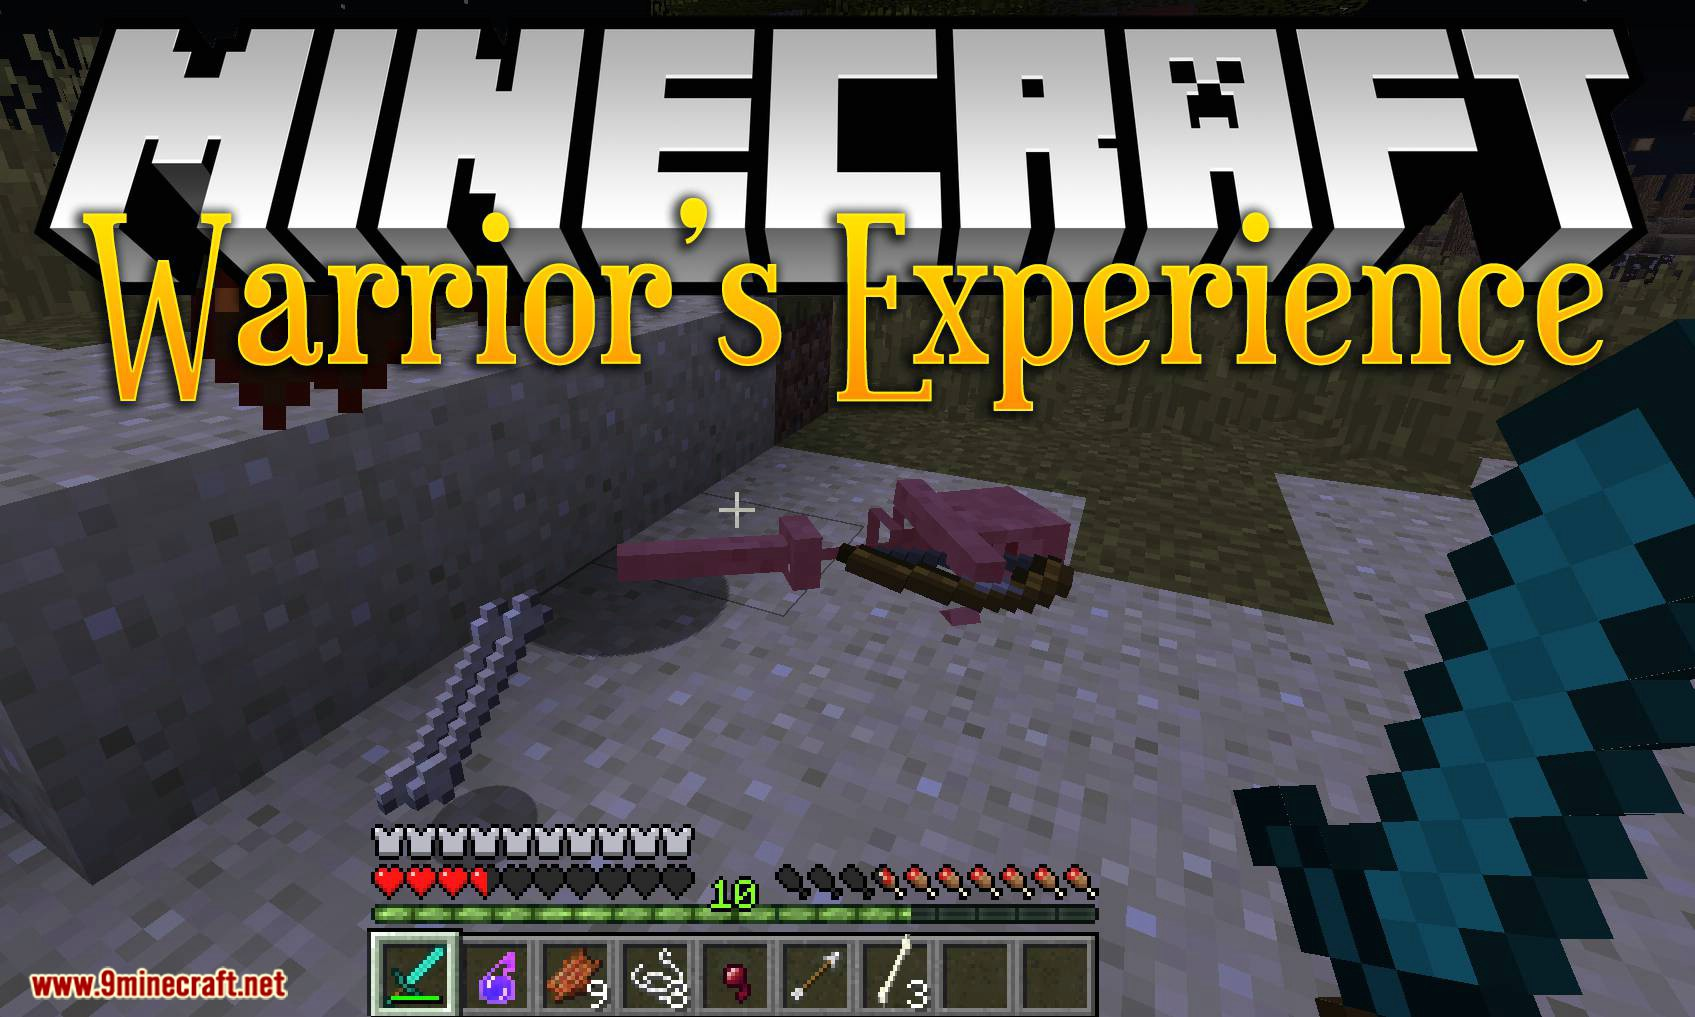 Warrior_s Experience mod for minecraft logo